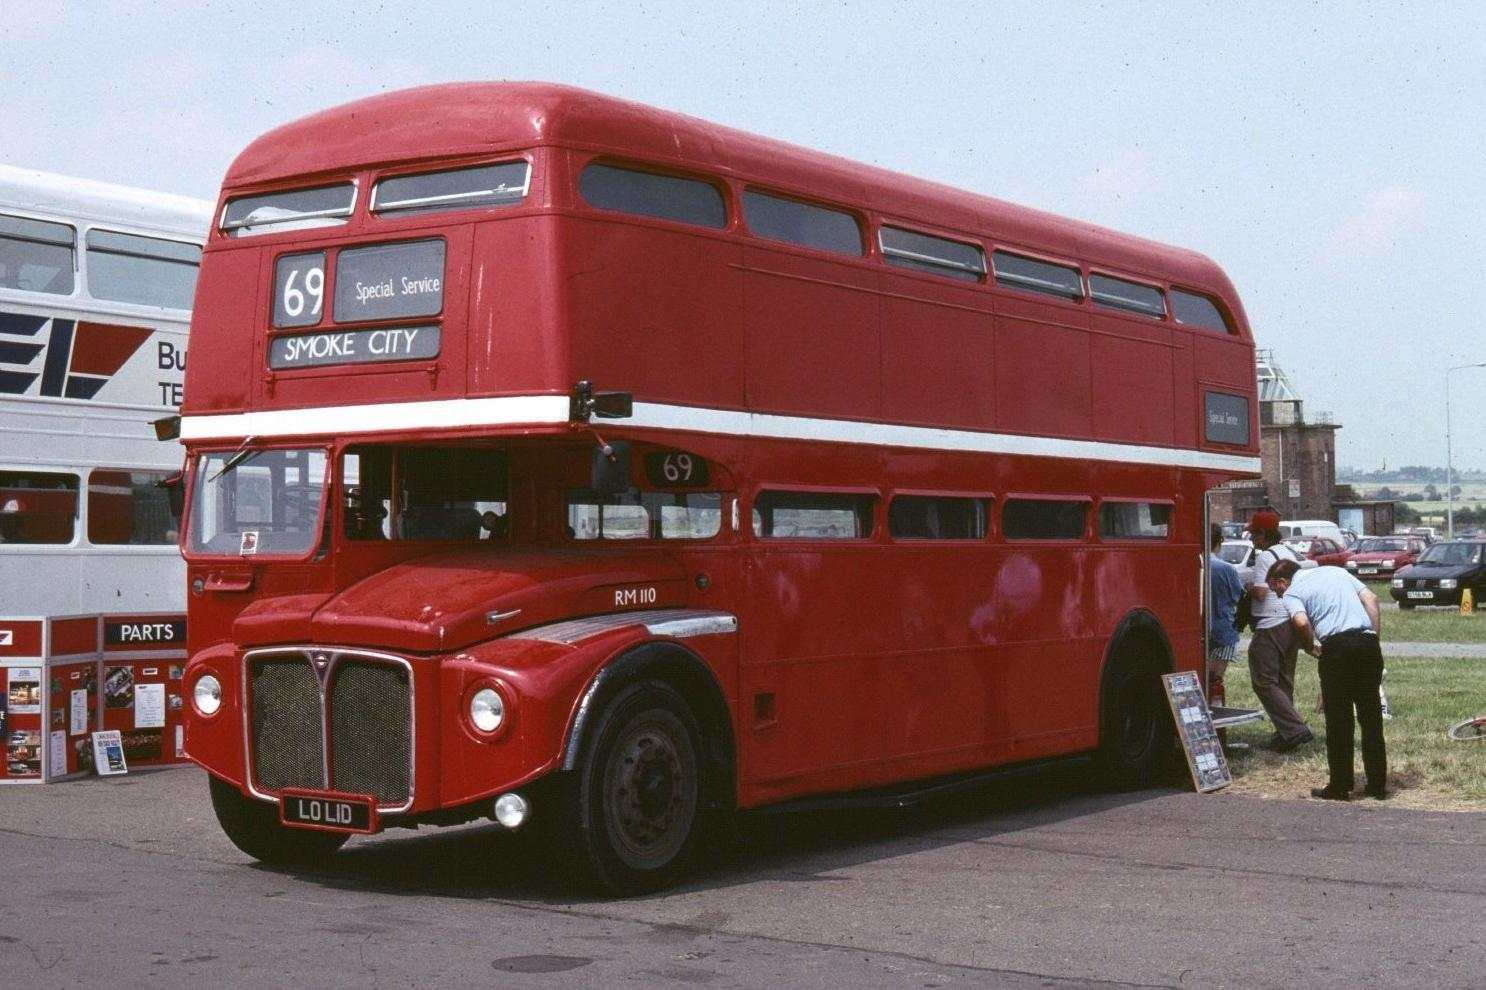 File Routemaster Rm110 Lo L1d Showbus 1989 1 Jpg Wikimedia Commons